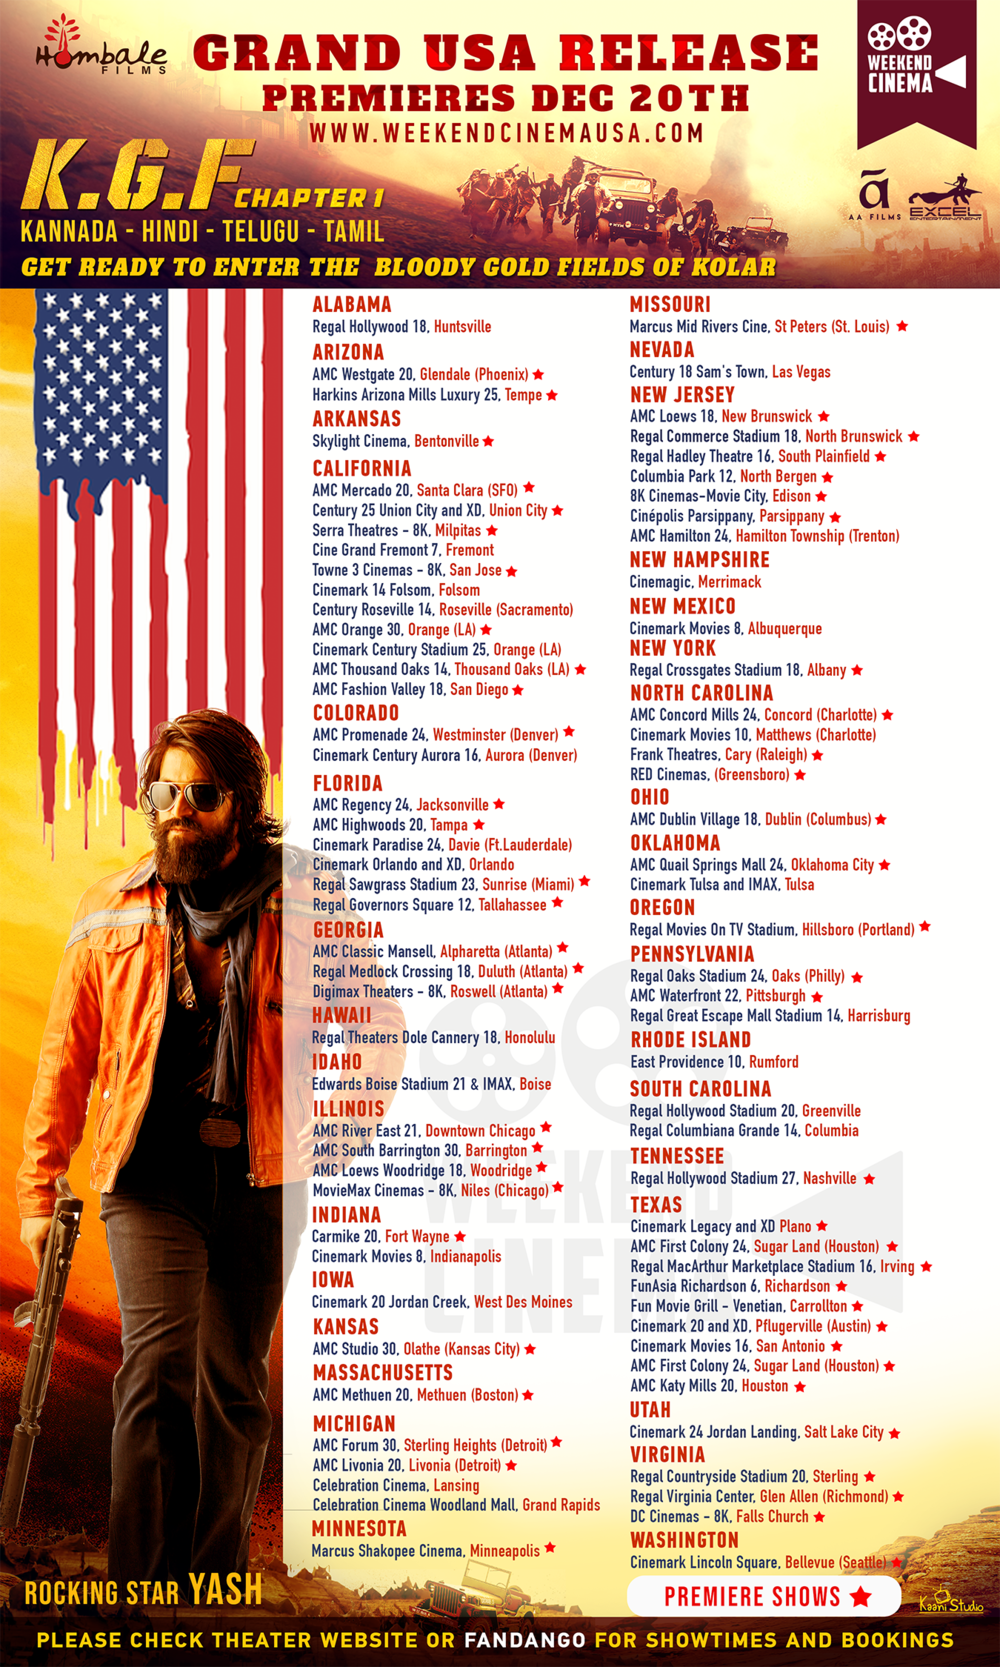 KGF_USA_Release Poster (First Week)